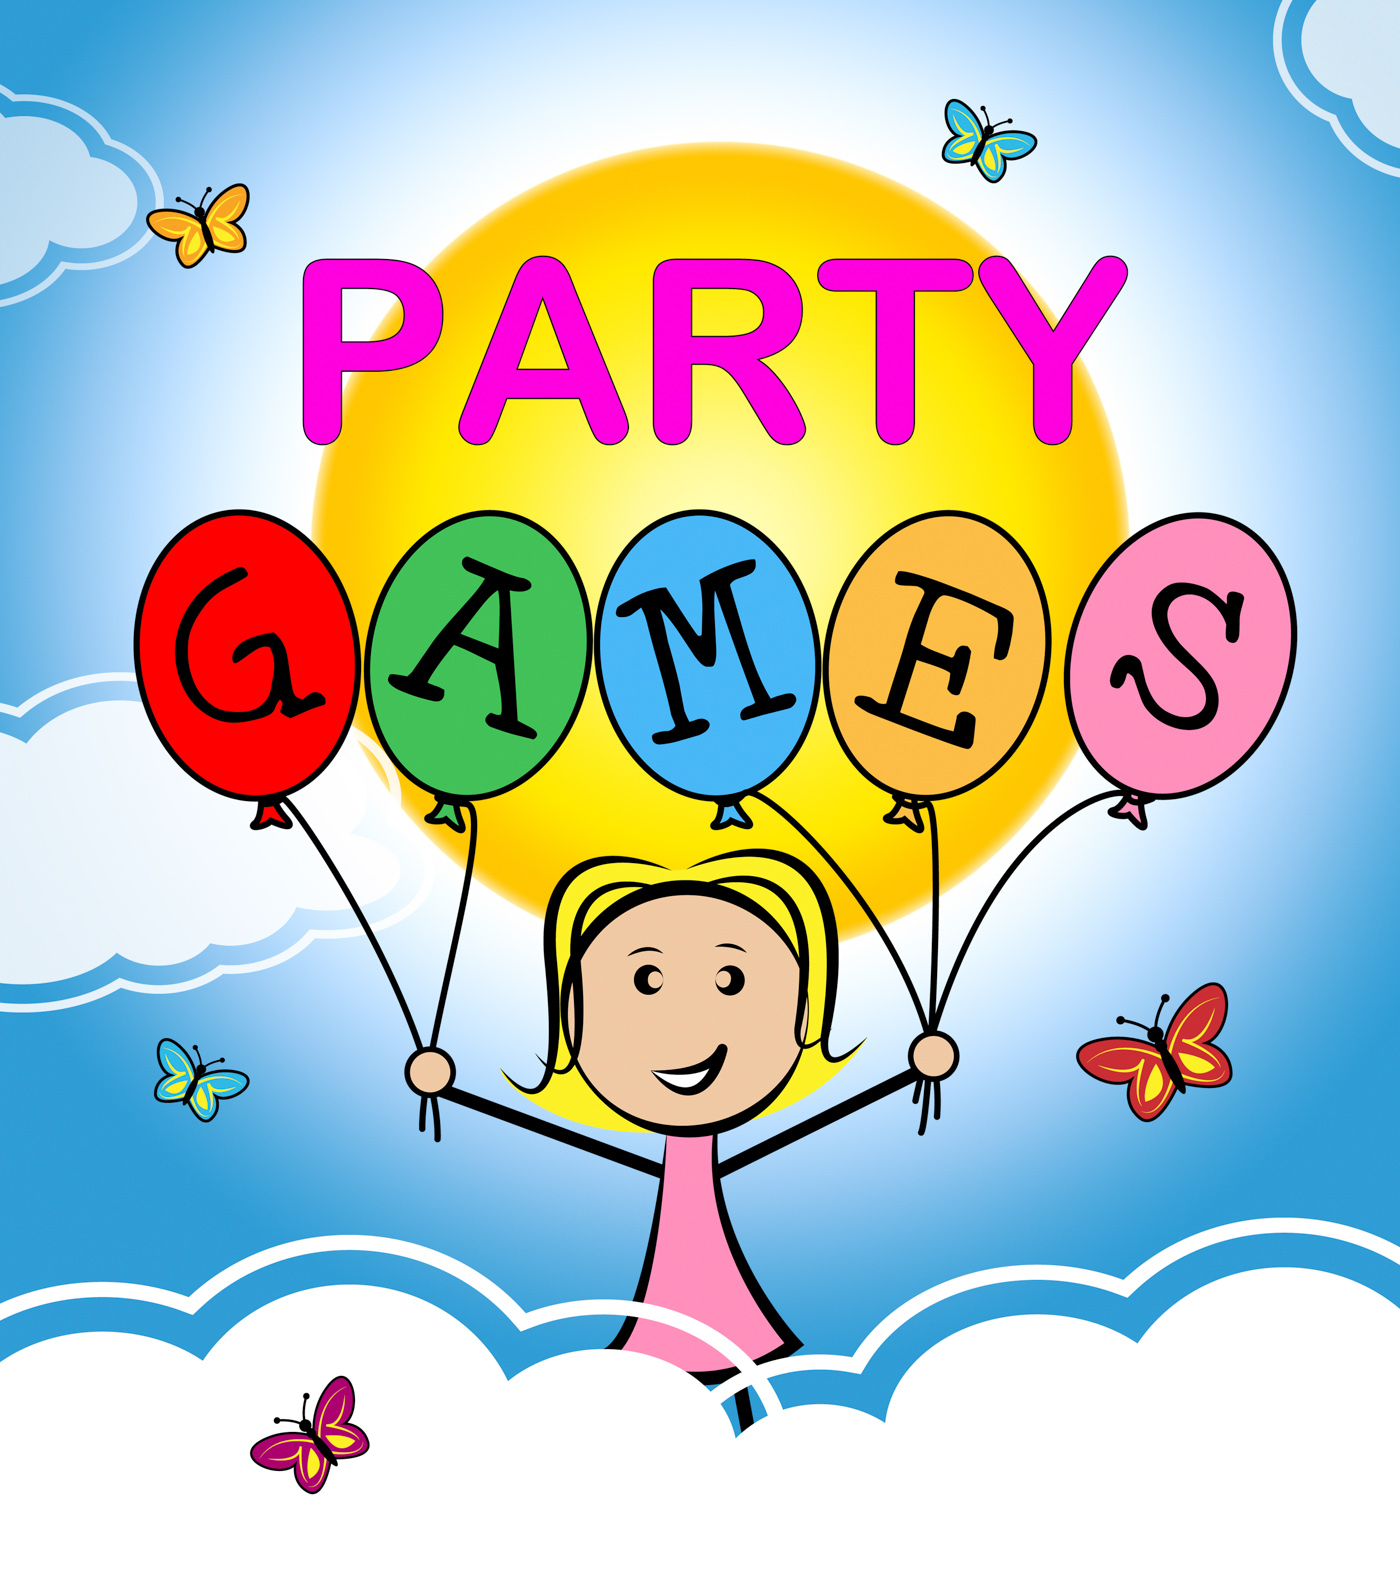 Party Games Shows Play Time And Celebrations, Entertainment, Game, Games, Gaming, HQ Photo